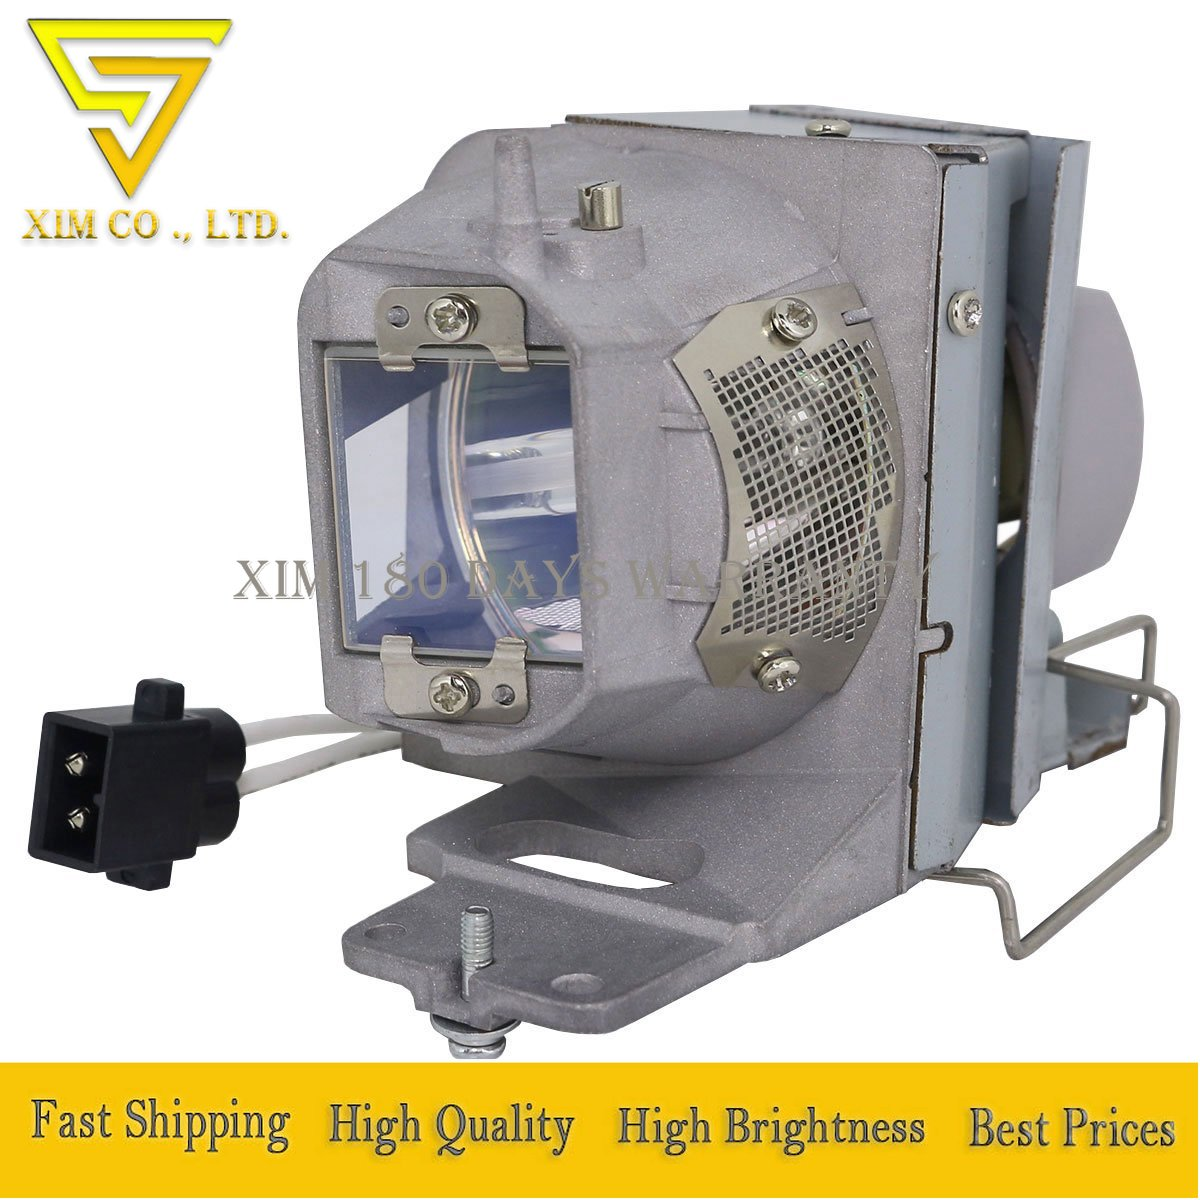 MC.JK211.00B Replacement DLP/LCD Projector Lamp Compatible With ACER H6517BD H6517ST S1283 S1283WH S1283WHNE Projectors